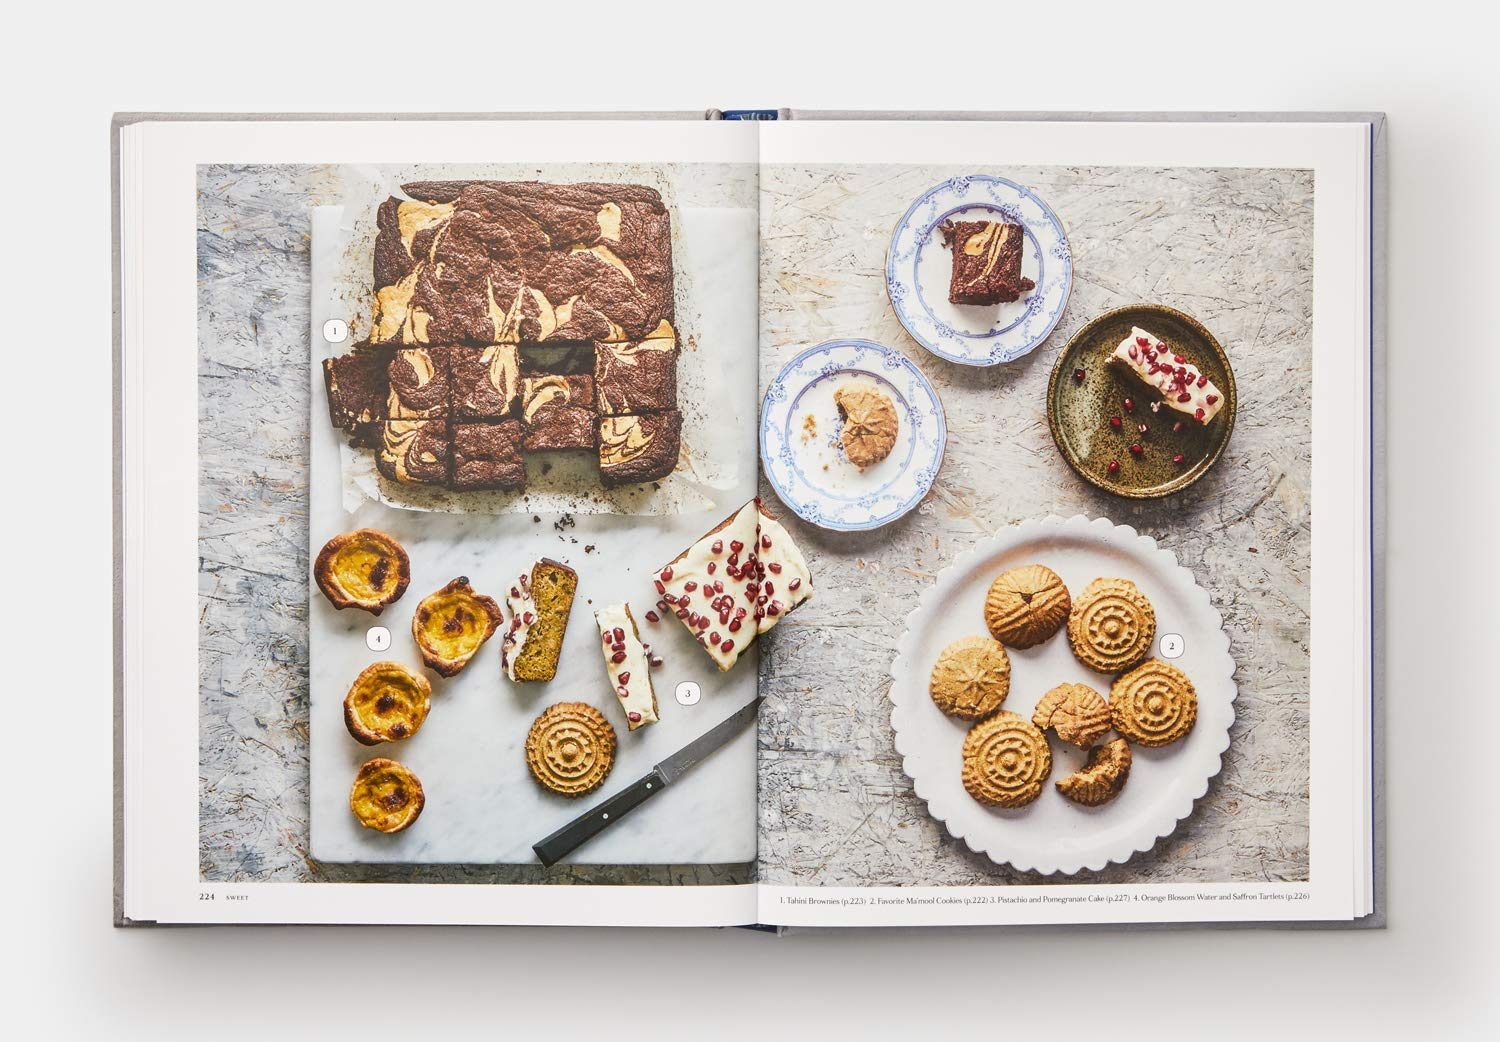 Mezze Cookbook: Sharing Plates from the Middle East